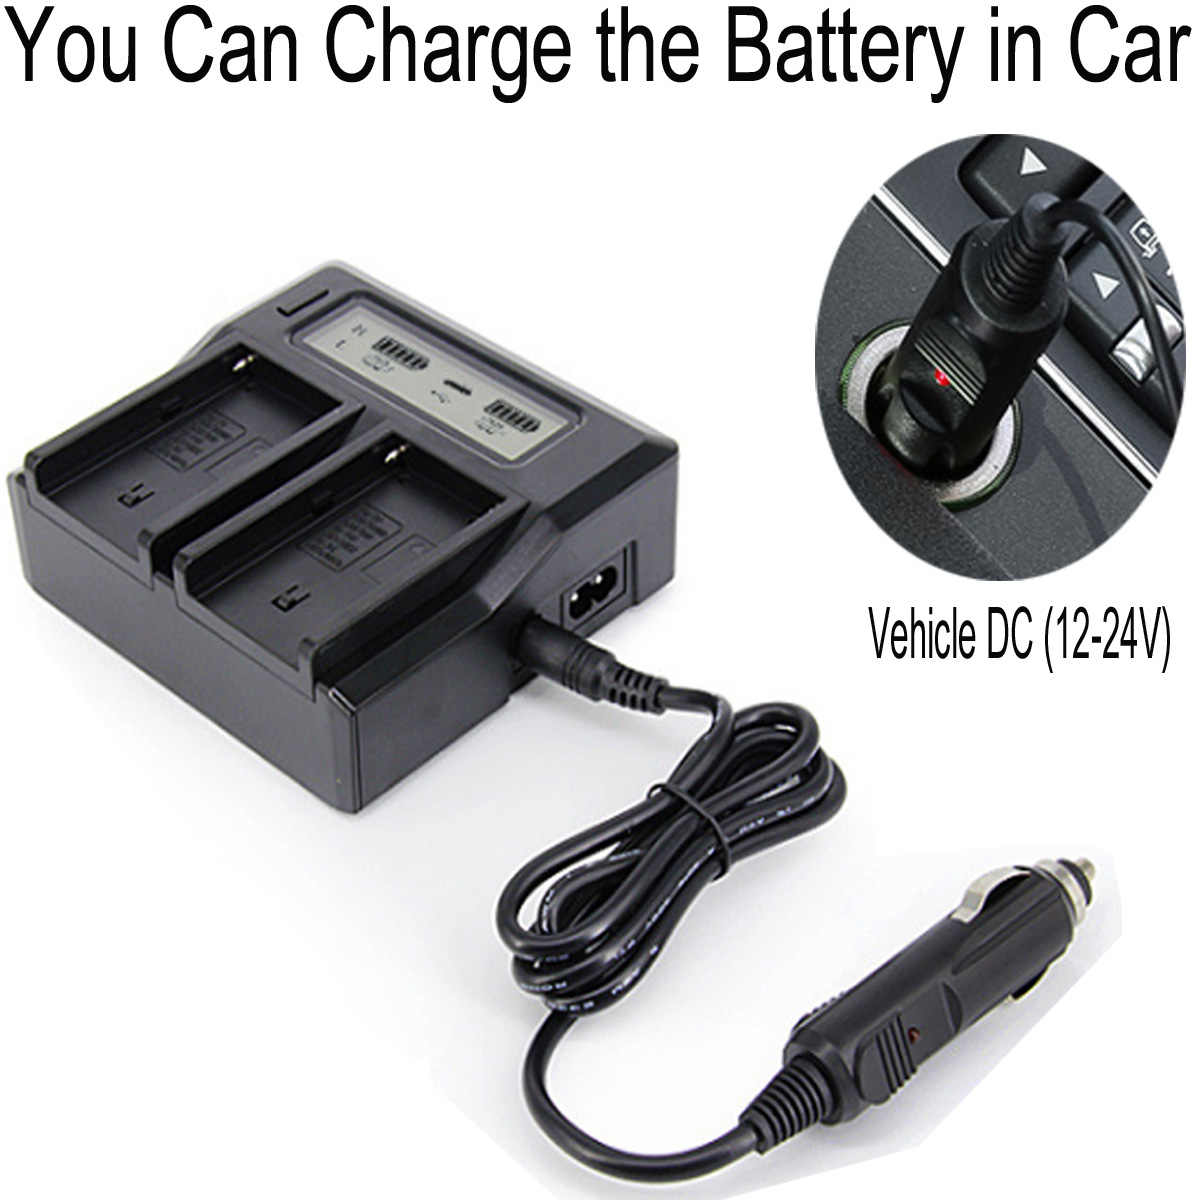 HXR-NX200 NXCAM Camcorder Battery Charger for Sony HXR-NX100